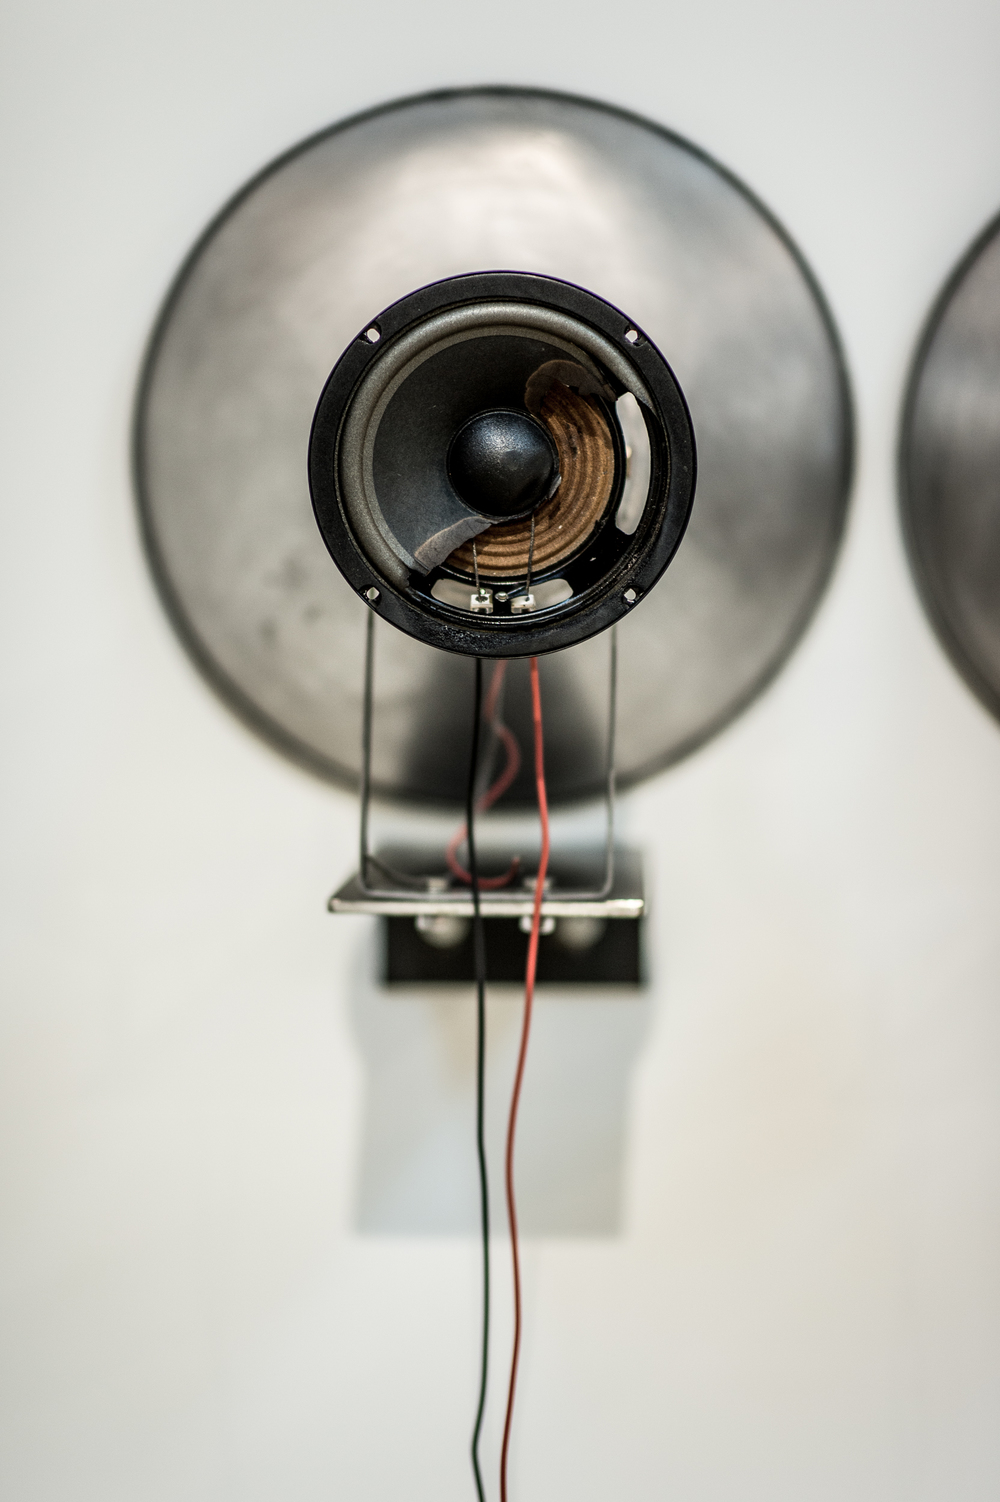 Arythmique,  2015.  [série Dialogues]   Installation avec mégaphones, haut-parleurs, battements de coeurs, amplificateur 40 watts, acier.   Installation with speakers, recorded heart beats, 40 watts amplifier and steel.   Dimensions variables   Variable dimensions